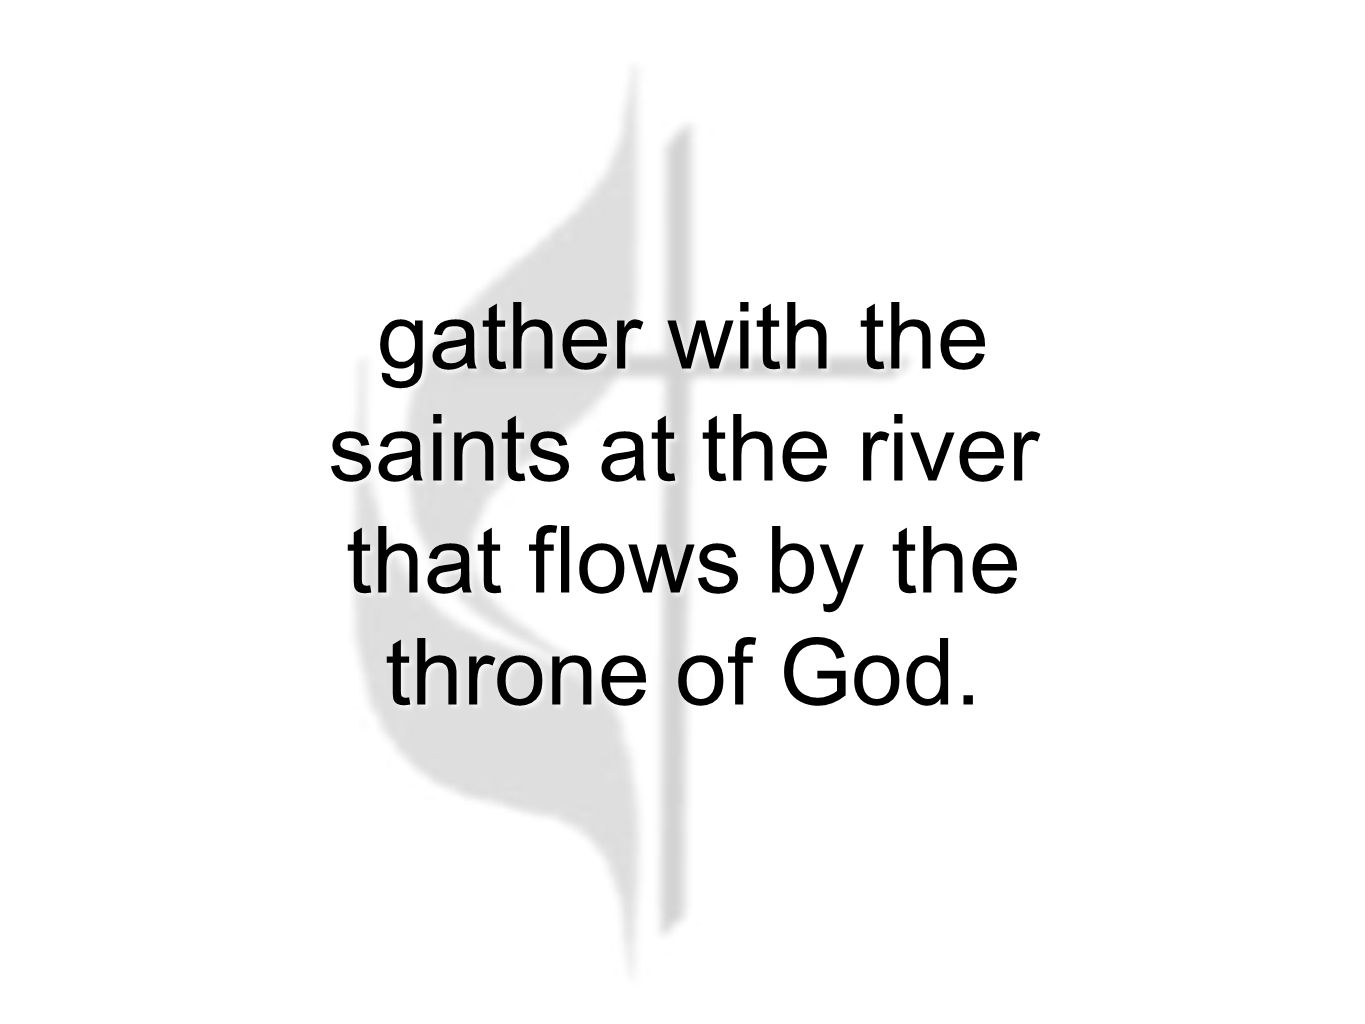 gather with the saints at the river that flows by the throne of God.